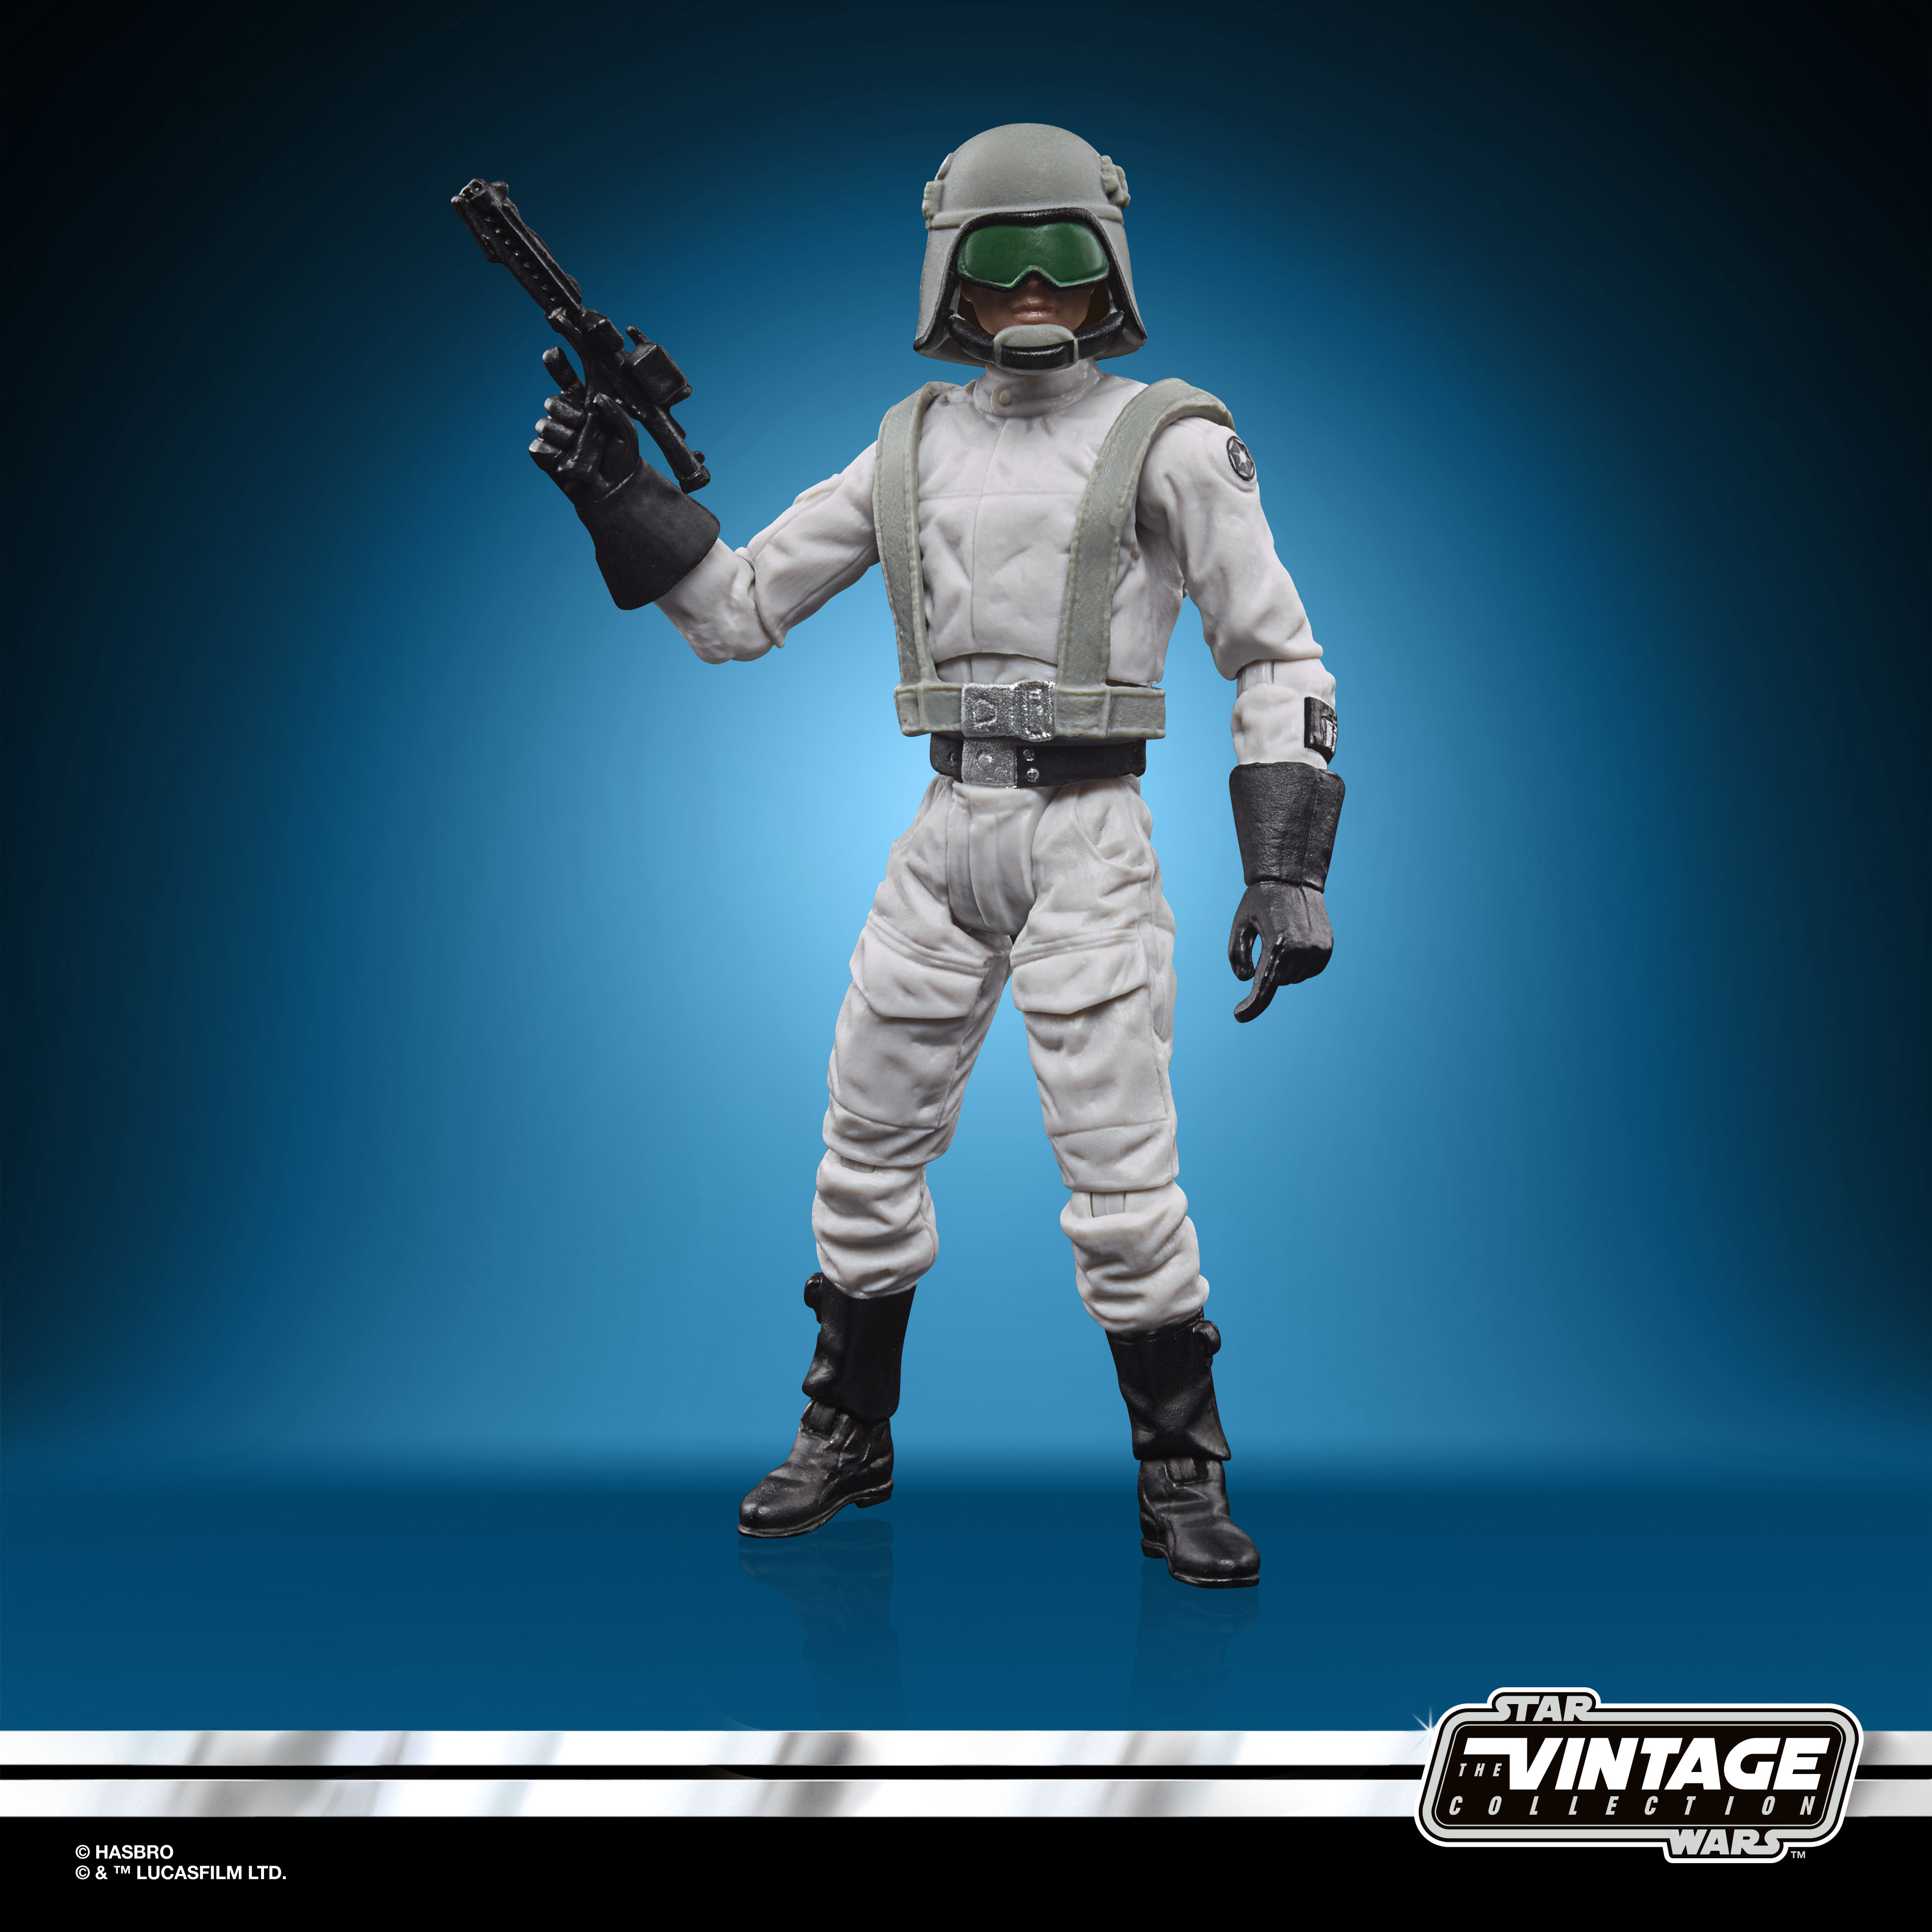 STAR WARS THE VINTAGE COLLECTION LUCASFILM FIRST 50 YEARS 3.75-INCH AT-ST DRIVER Figure – oop (3)